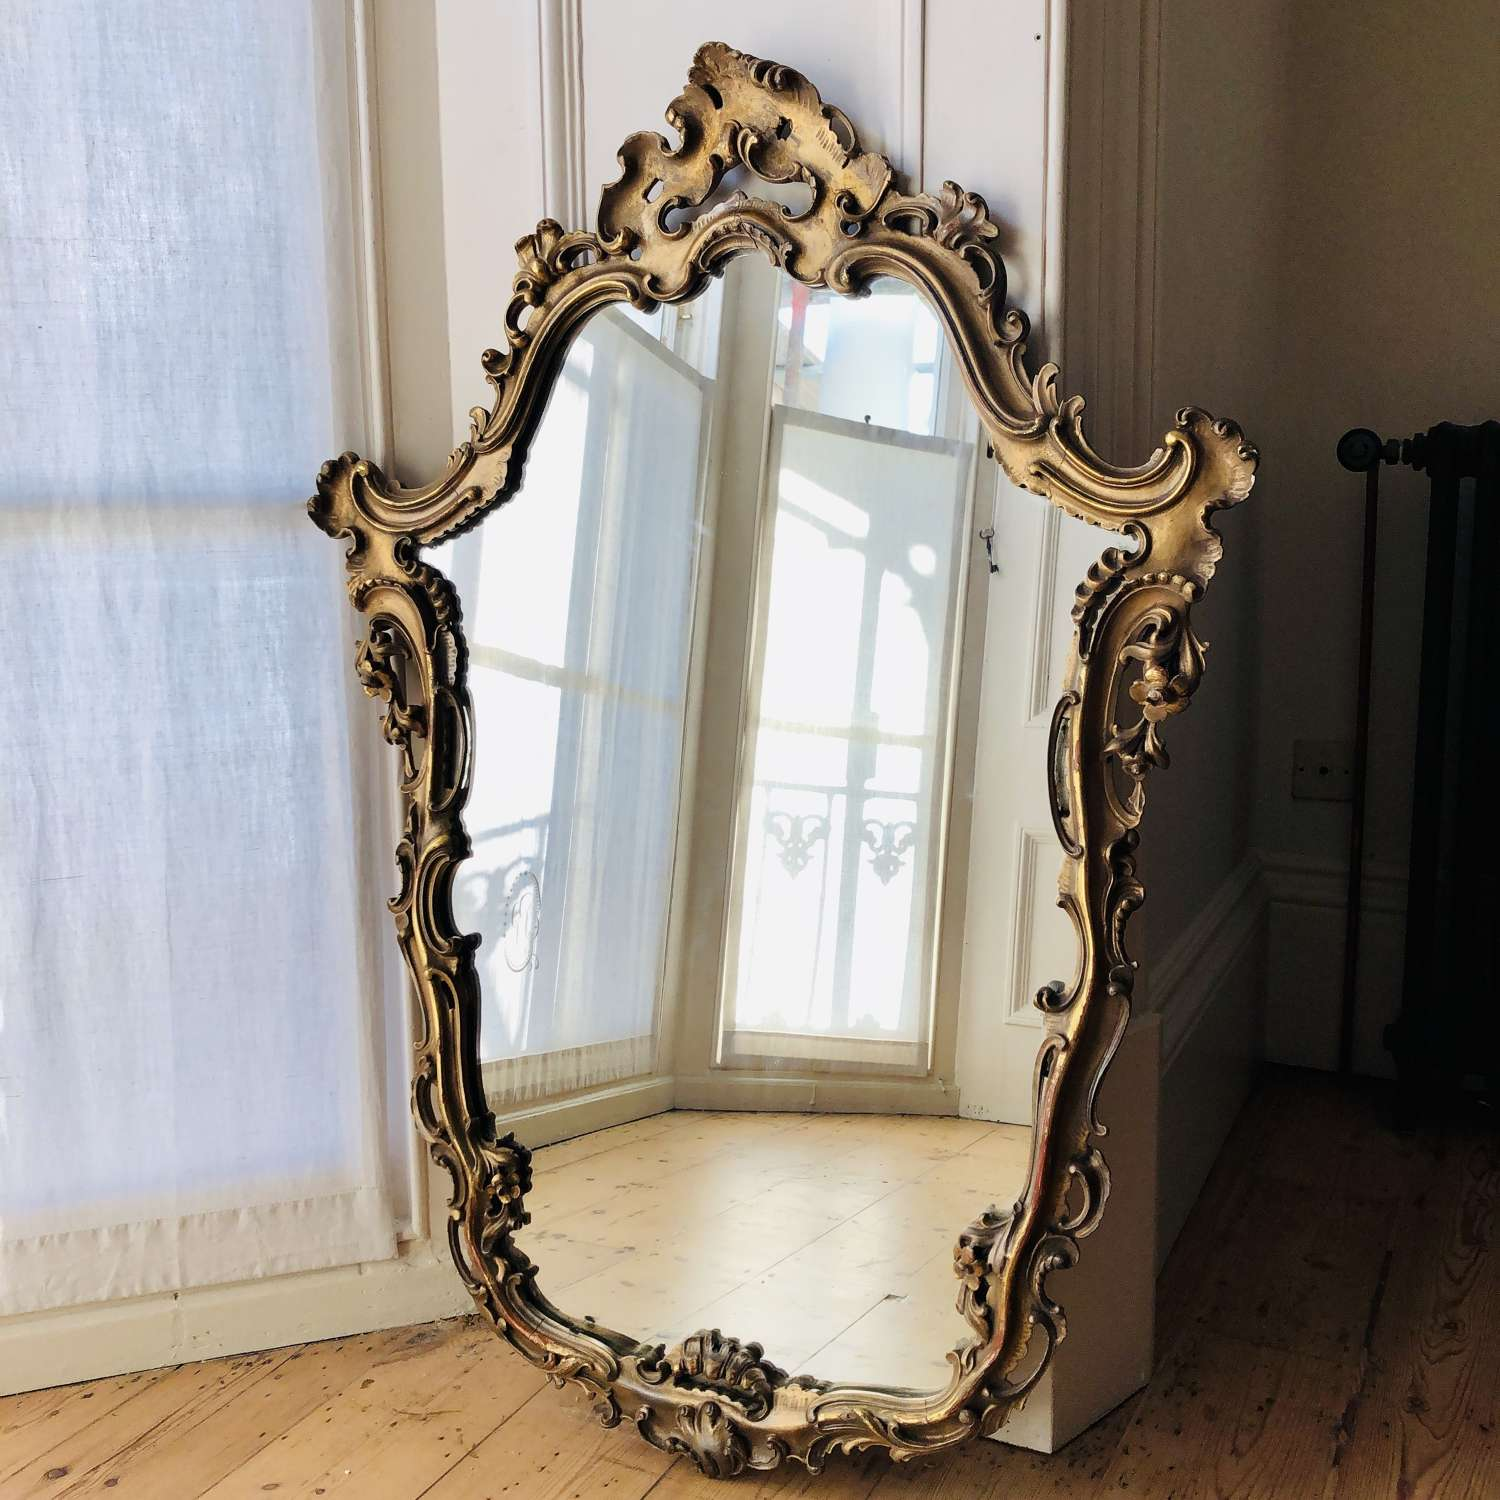 19th century ornate gilt mirror